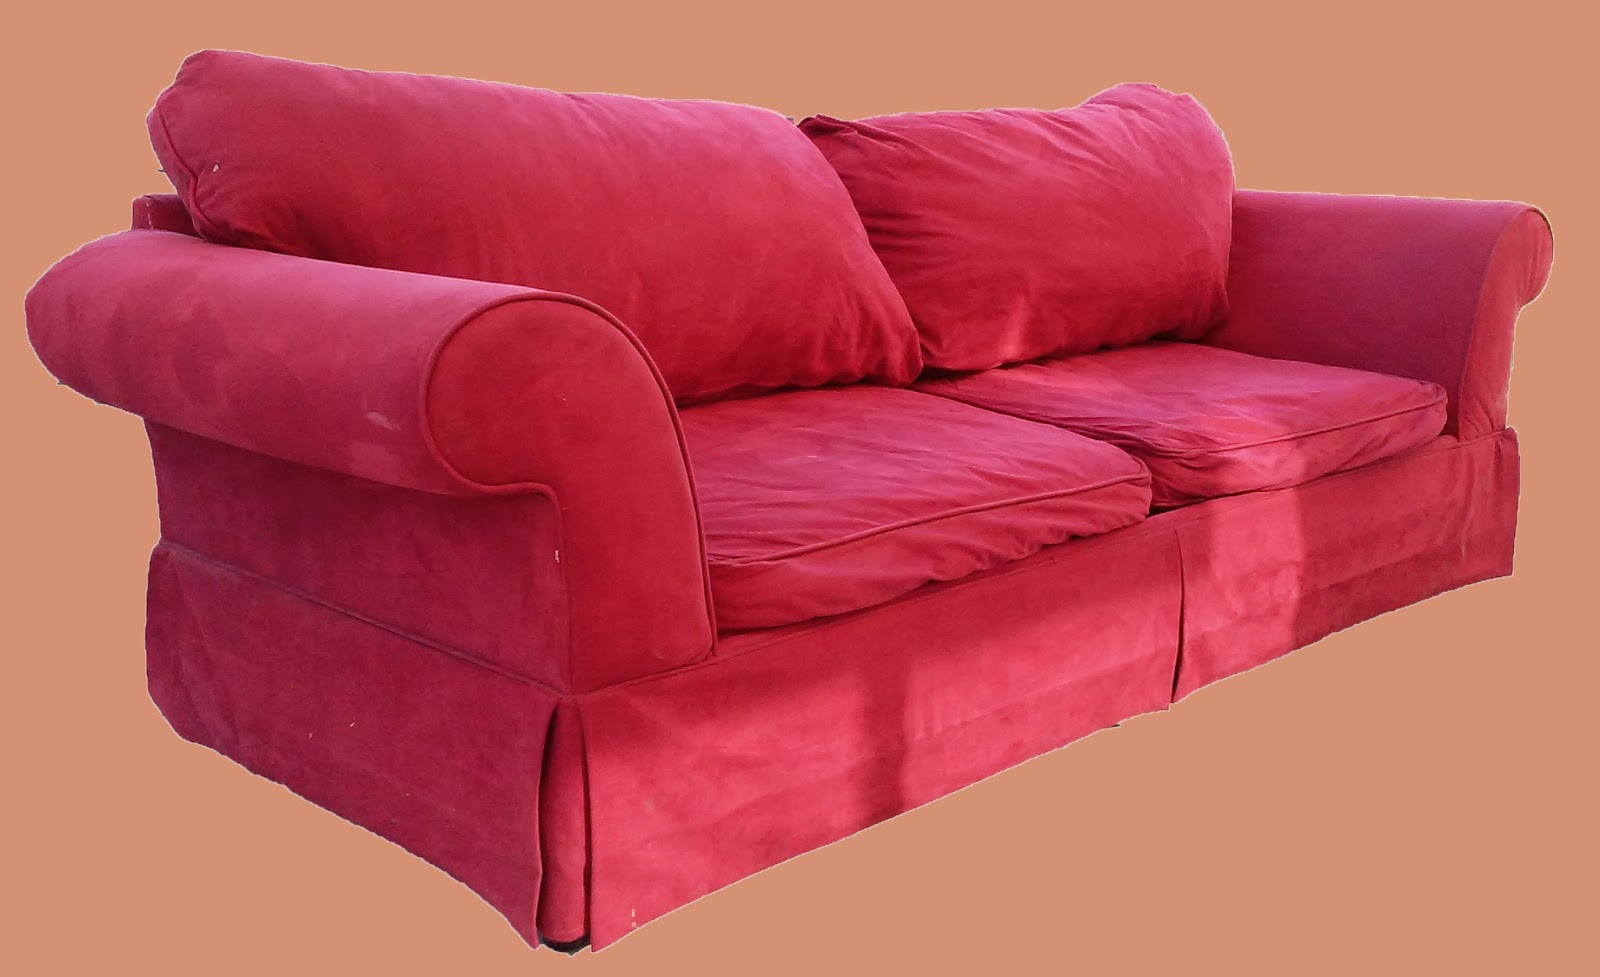 Uhuru Furniture Collectibles Red Microfiber Sofa 175 Sold